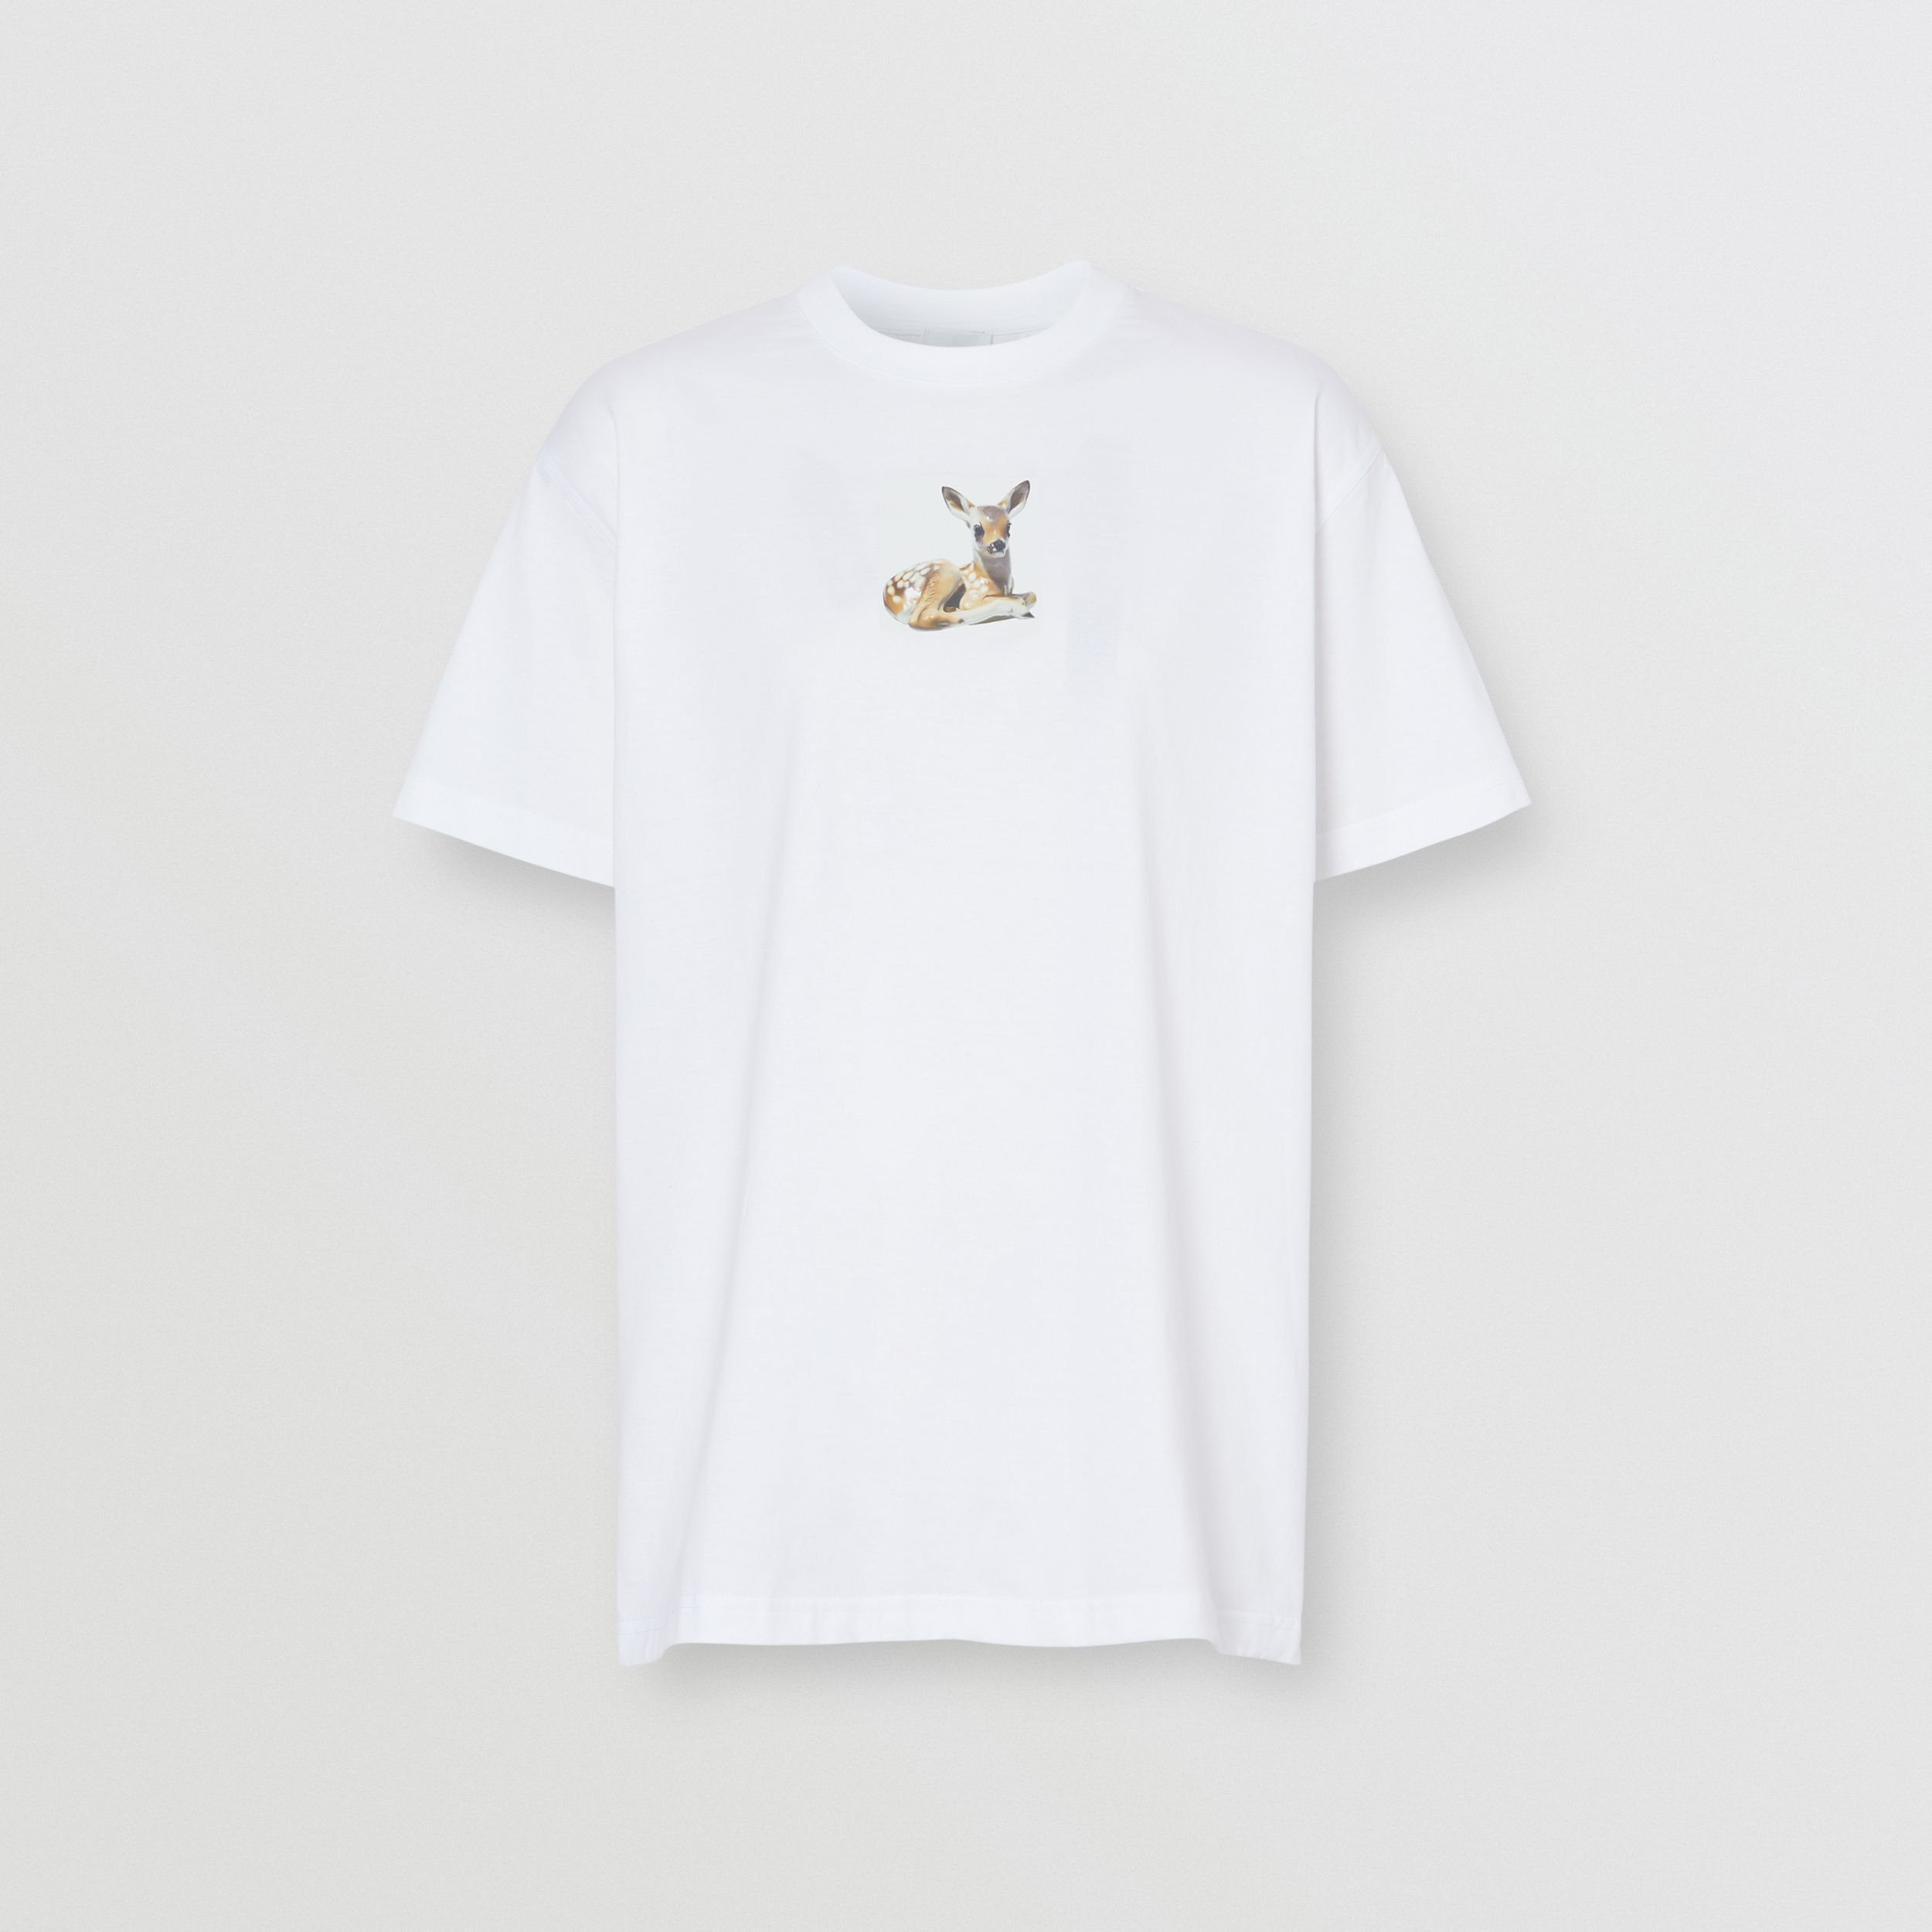 Deer Print Cotton T-shirt in White | Burberry - 4